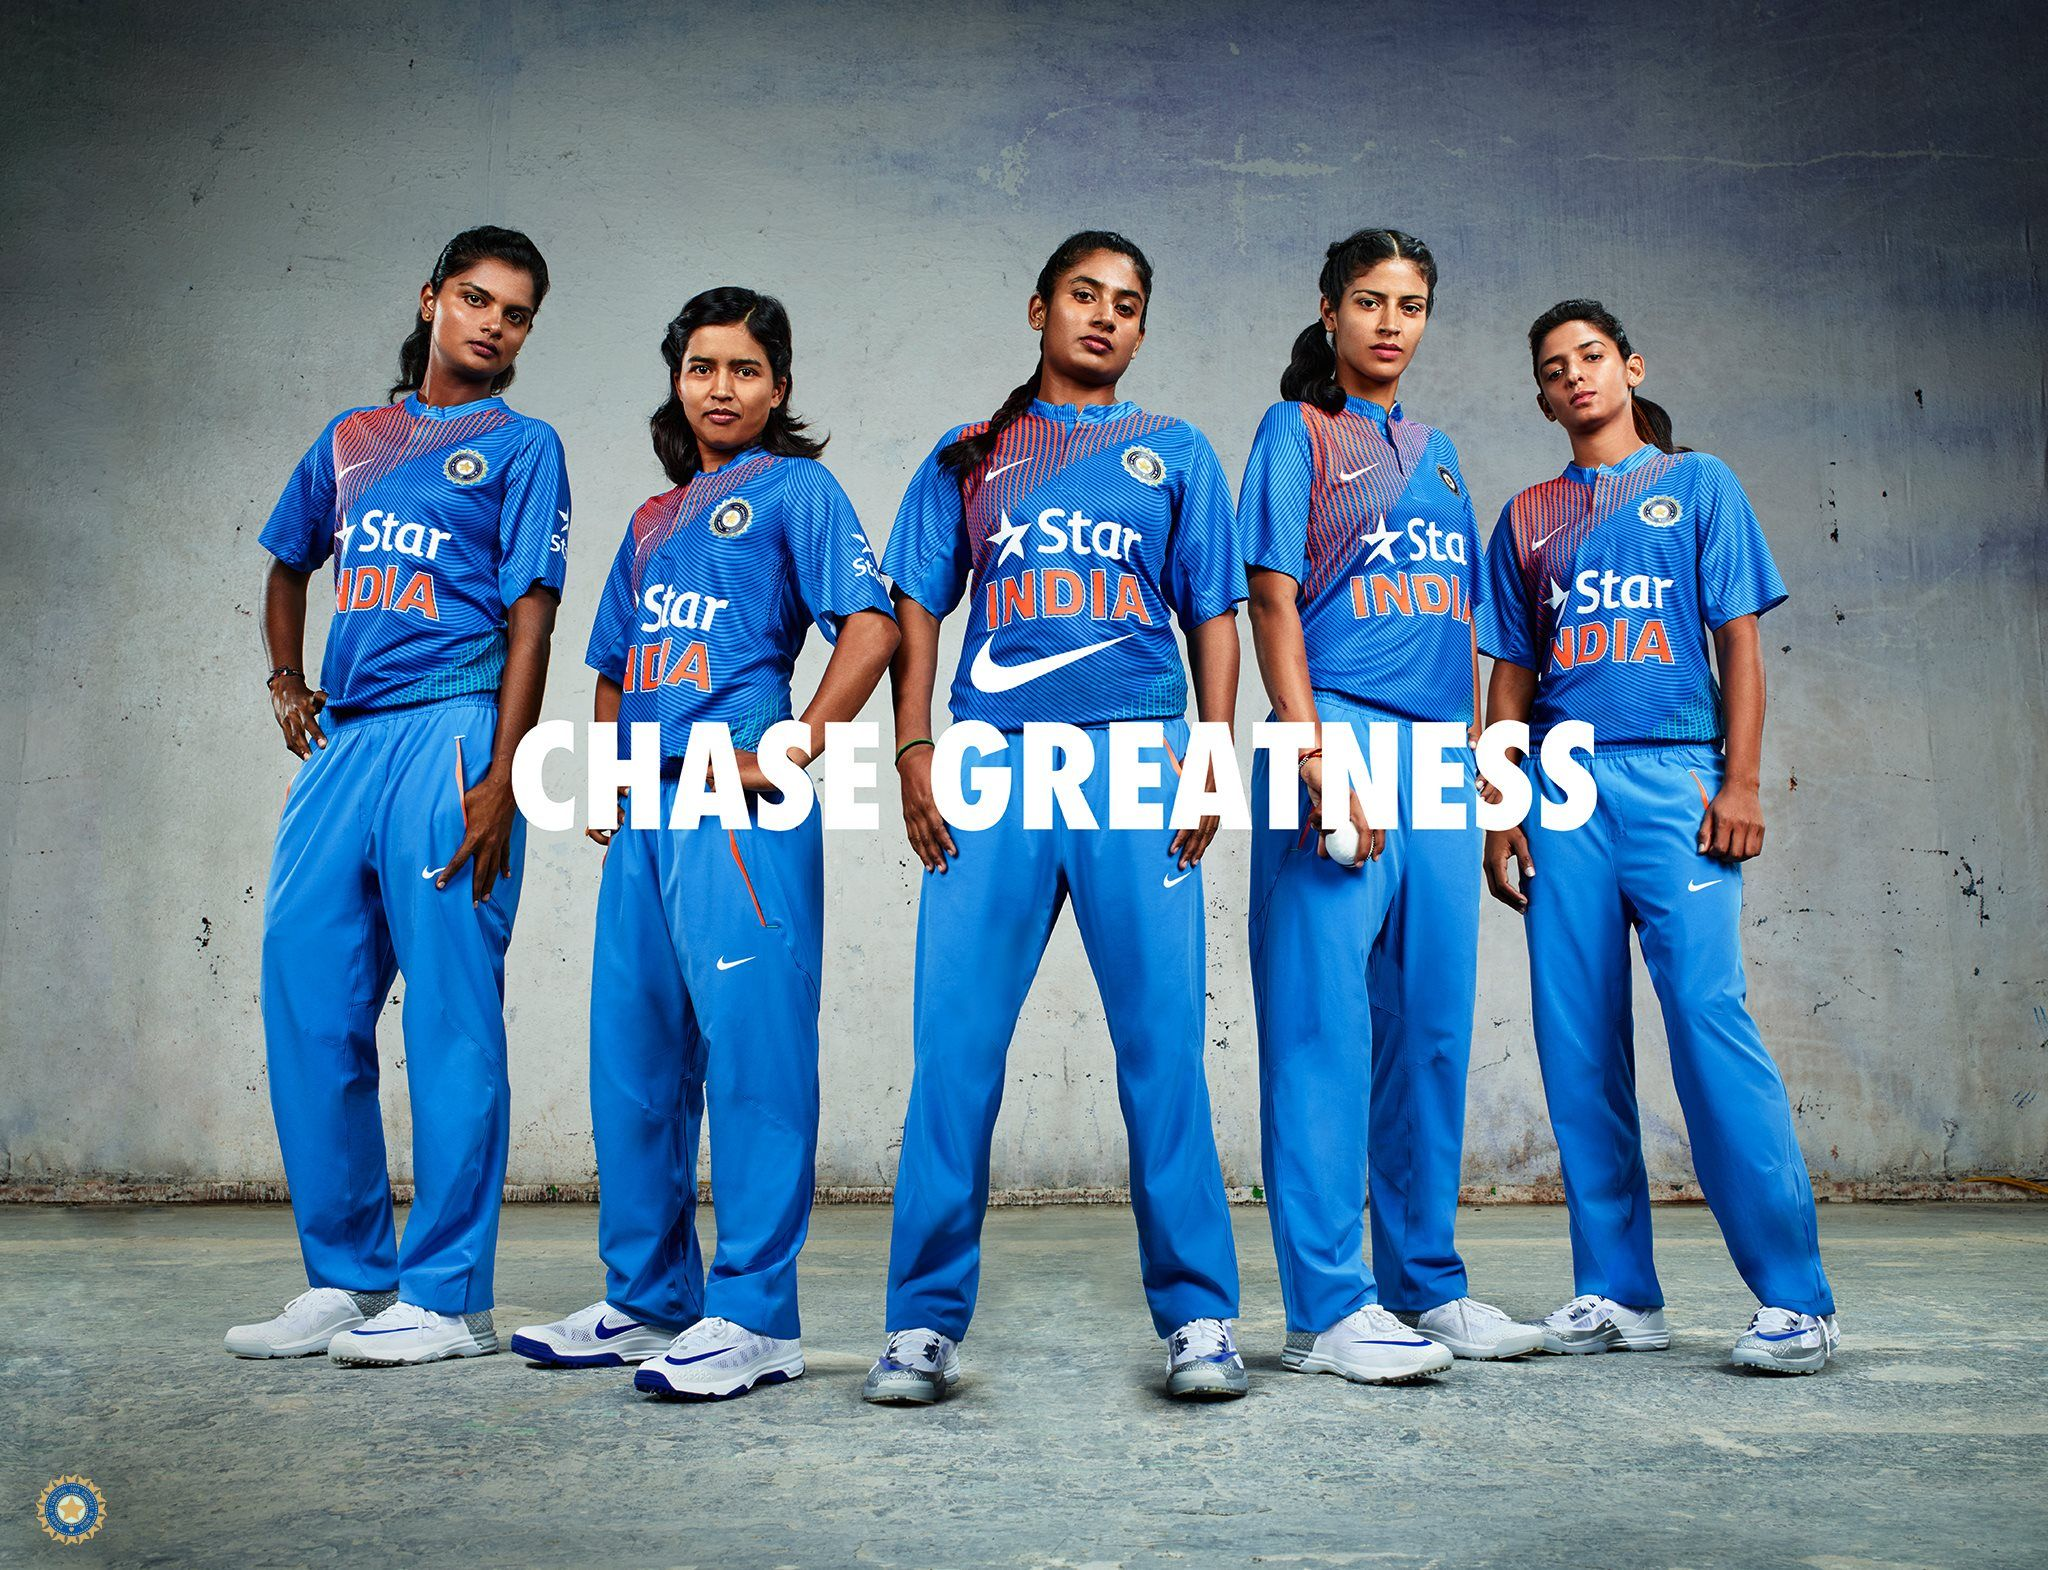 Nike New Cricket Jersey Indian Women Cricket Team Chasegreatness Cricket Teams Sports Women Cricket Sport